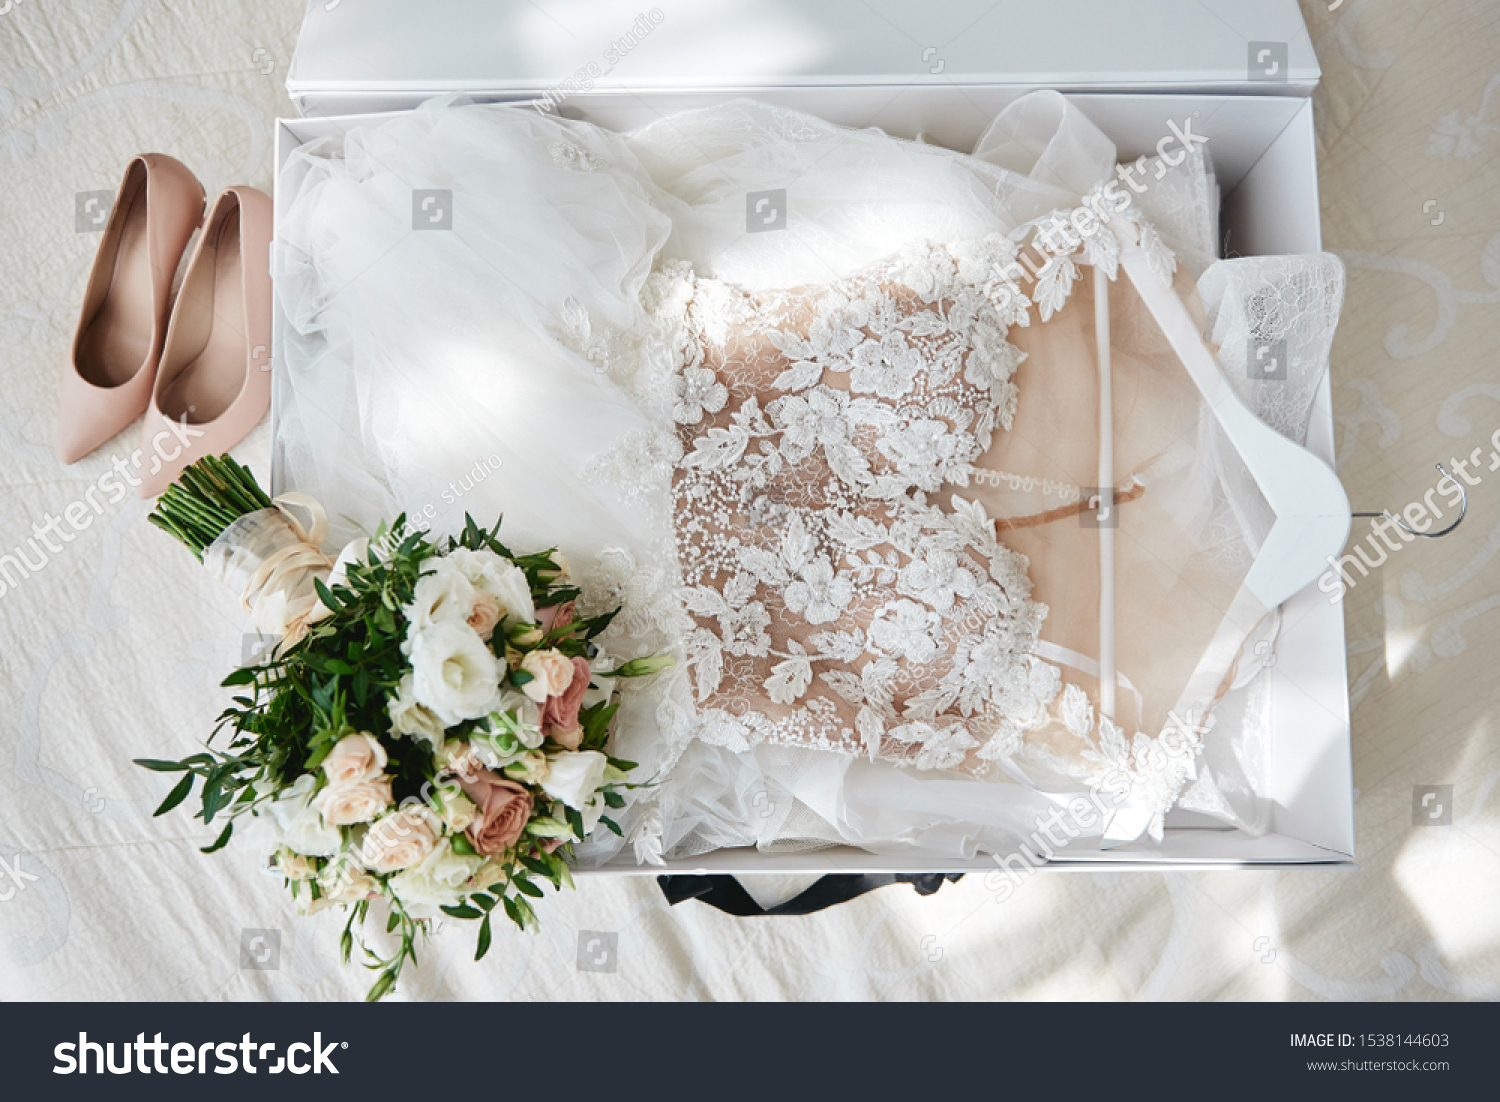 Luxury wedding dress in white box, beige women's shoes and bridal bouquet on bed, copy space. Bridal morning preparations. Wedding concept #1538144603